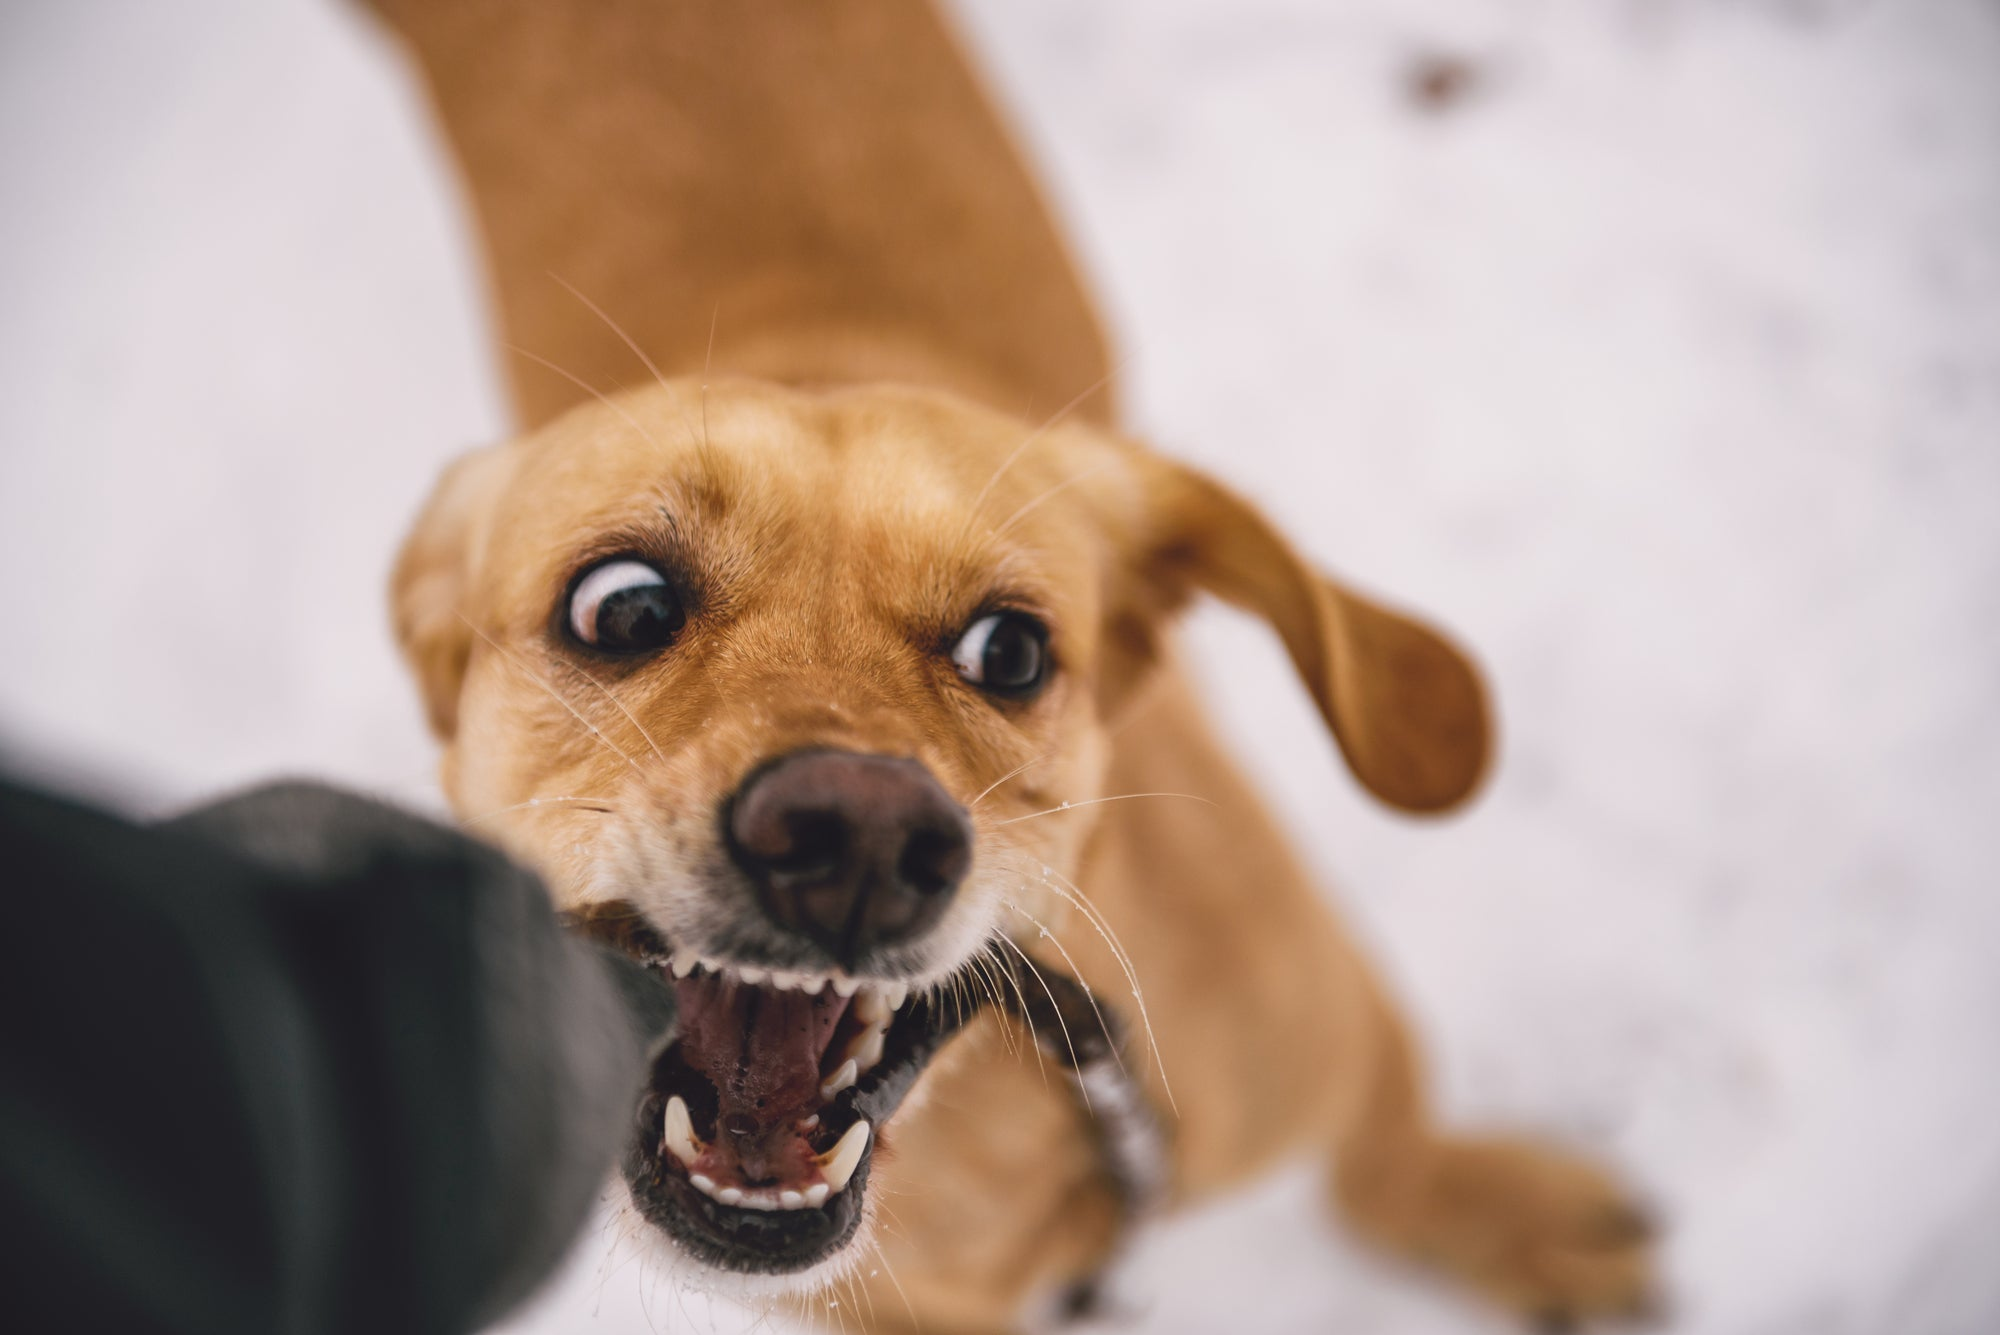 How to Get Your Puppy to Stop Play Biting